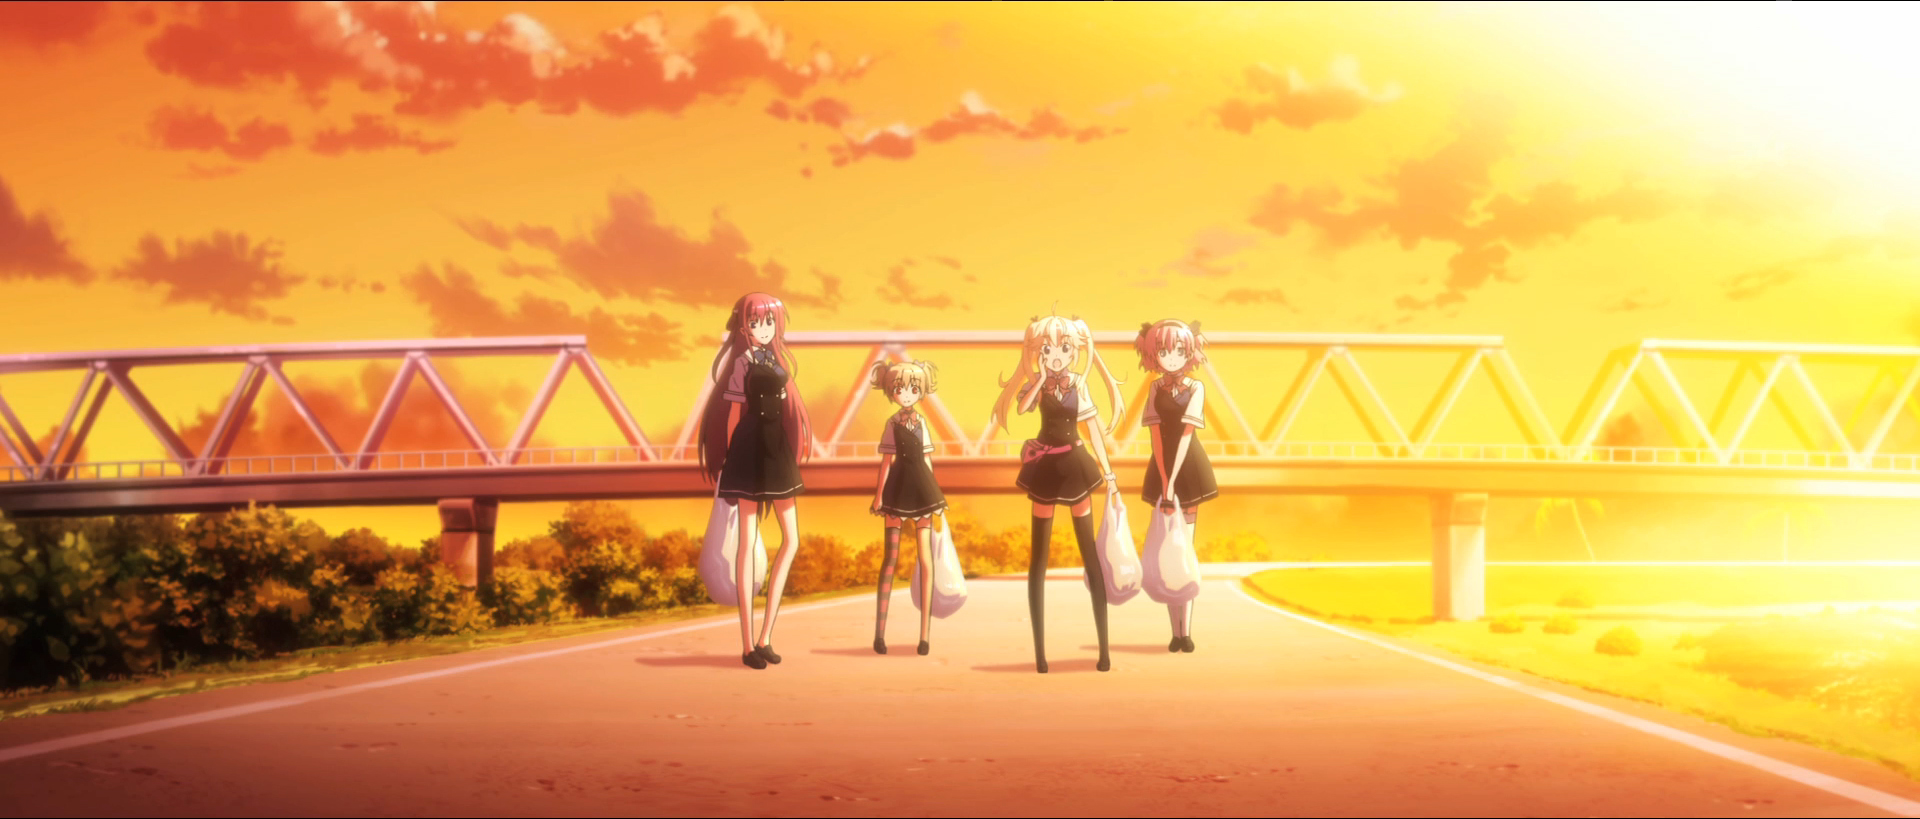 The fruit of grisaia 18 patch